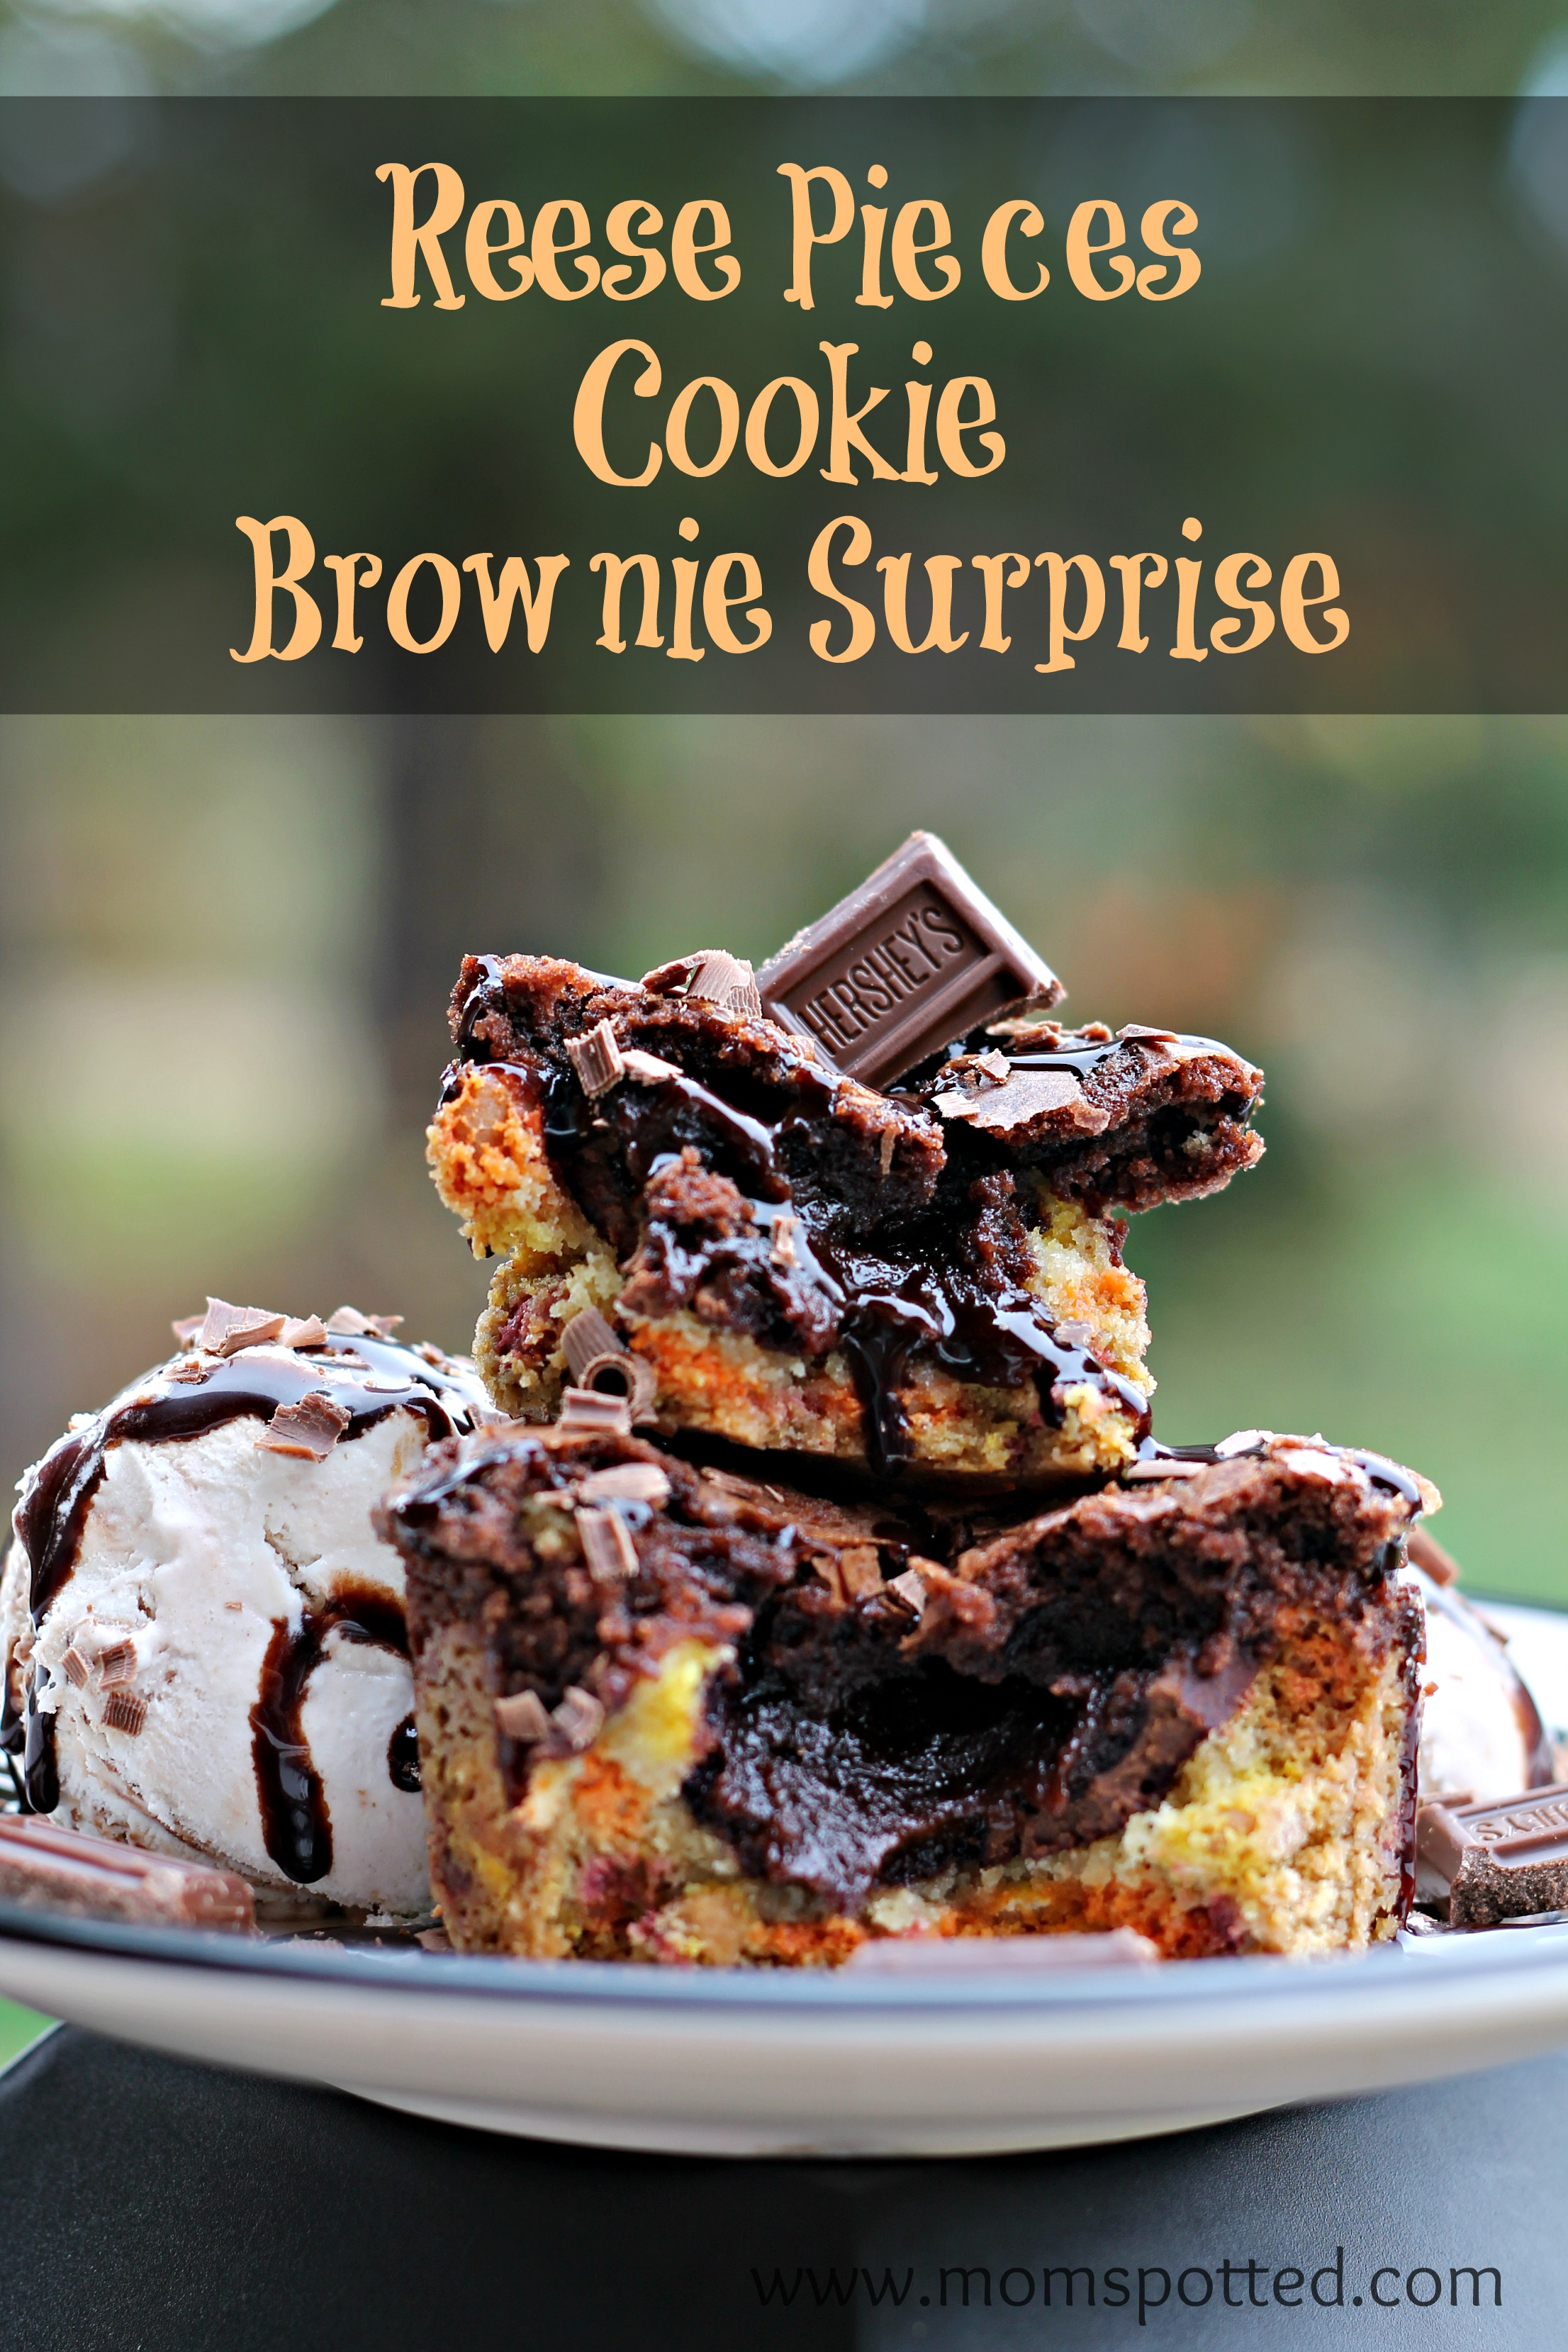 Got Candy? Make our Reese's Pieces Cookie Brownie Surprise Recipe! #HersheysHalloween #momspotted